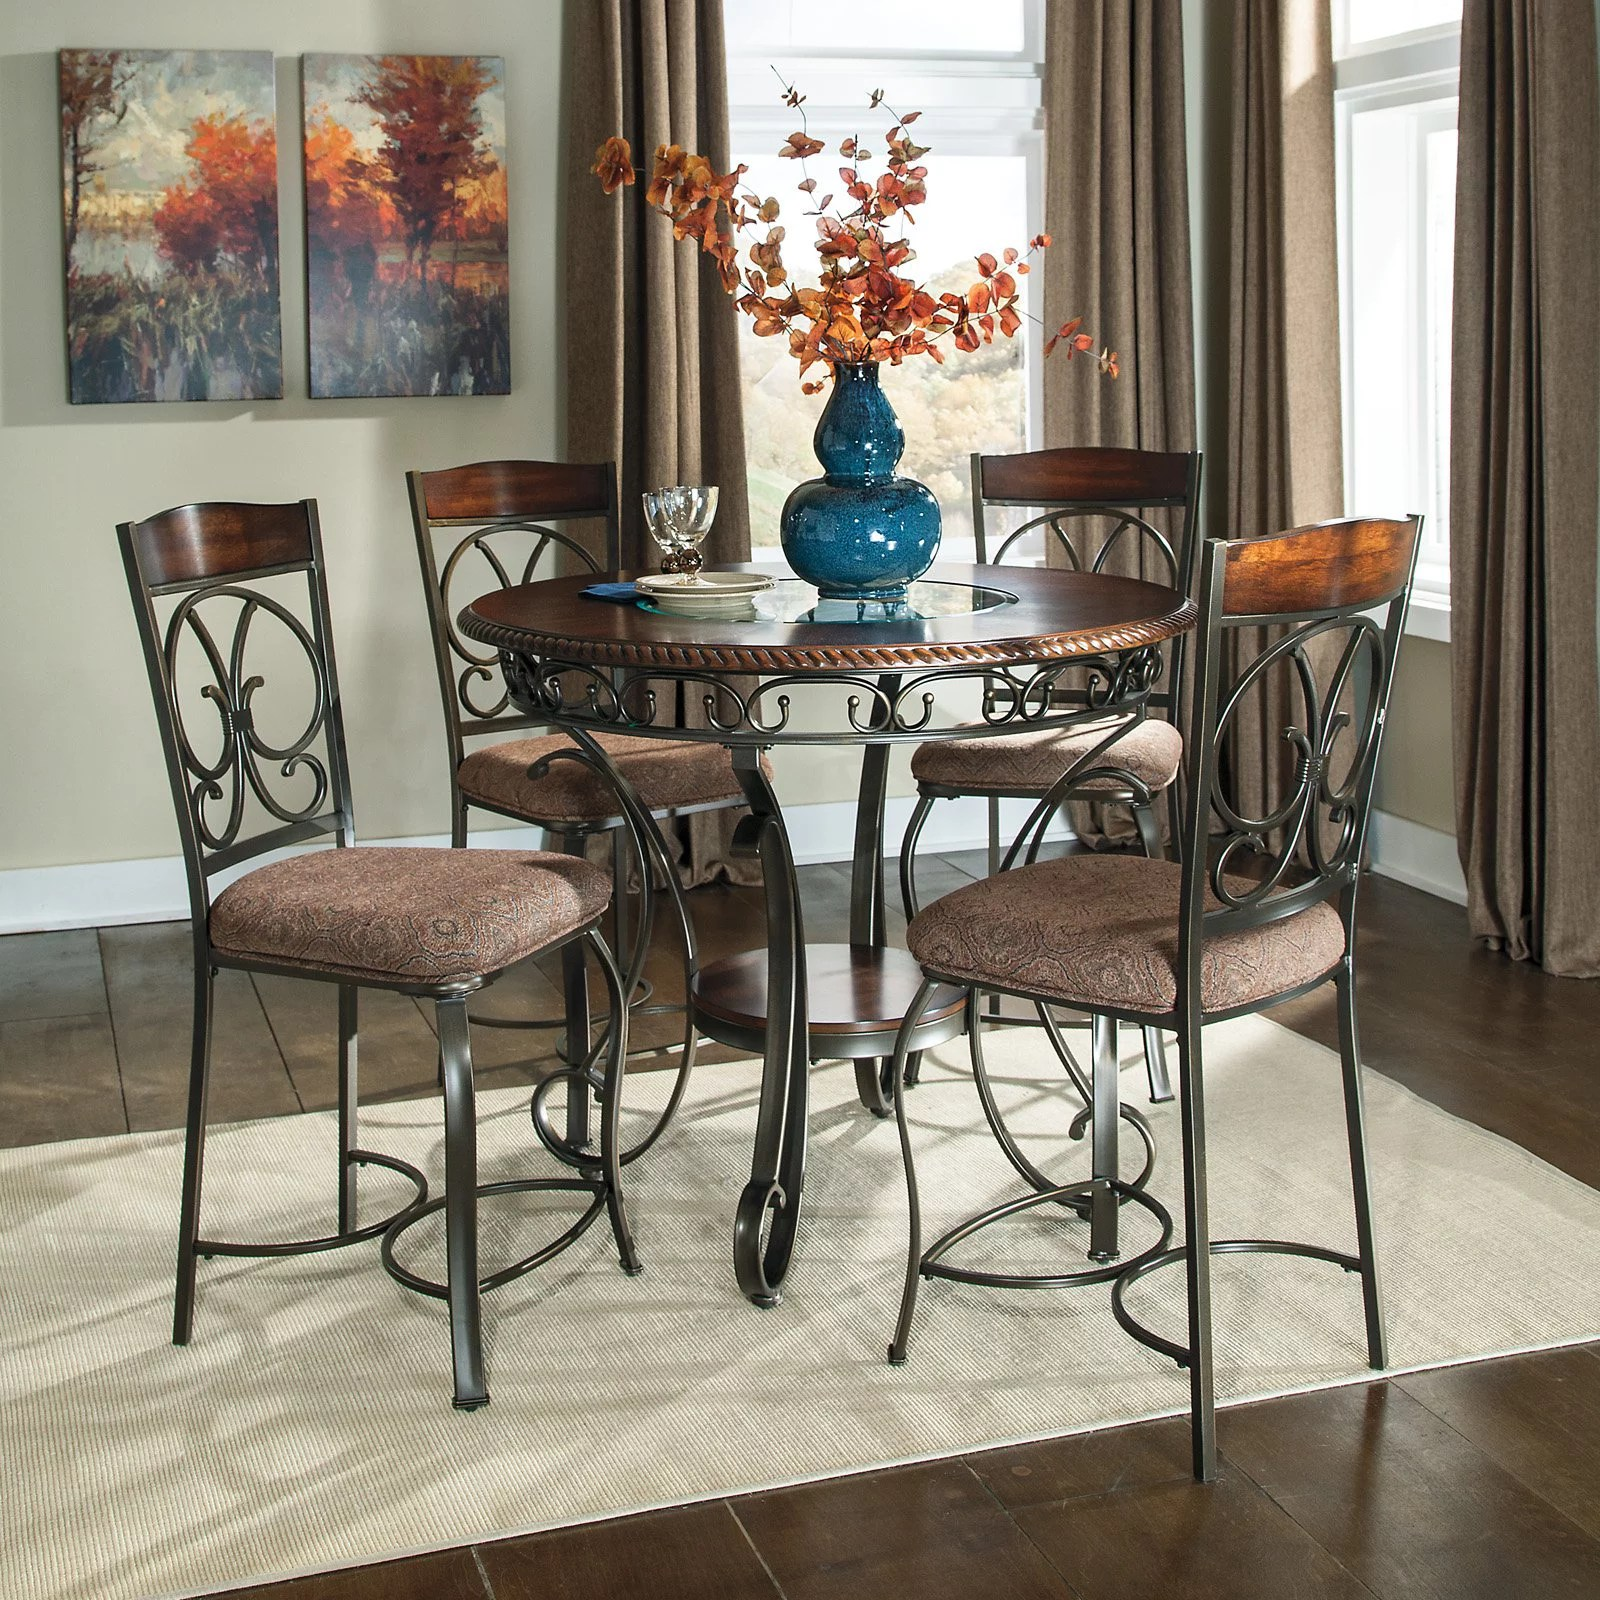 ashley dining room chairs nebraska furniture mart signature design by glambrey counter height table sold separately walmart com